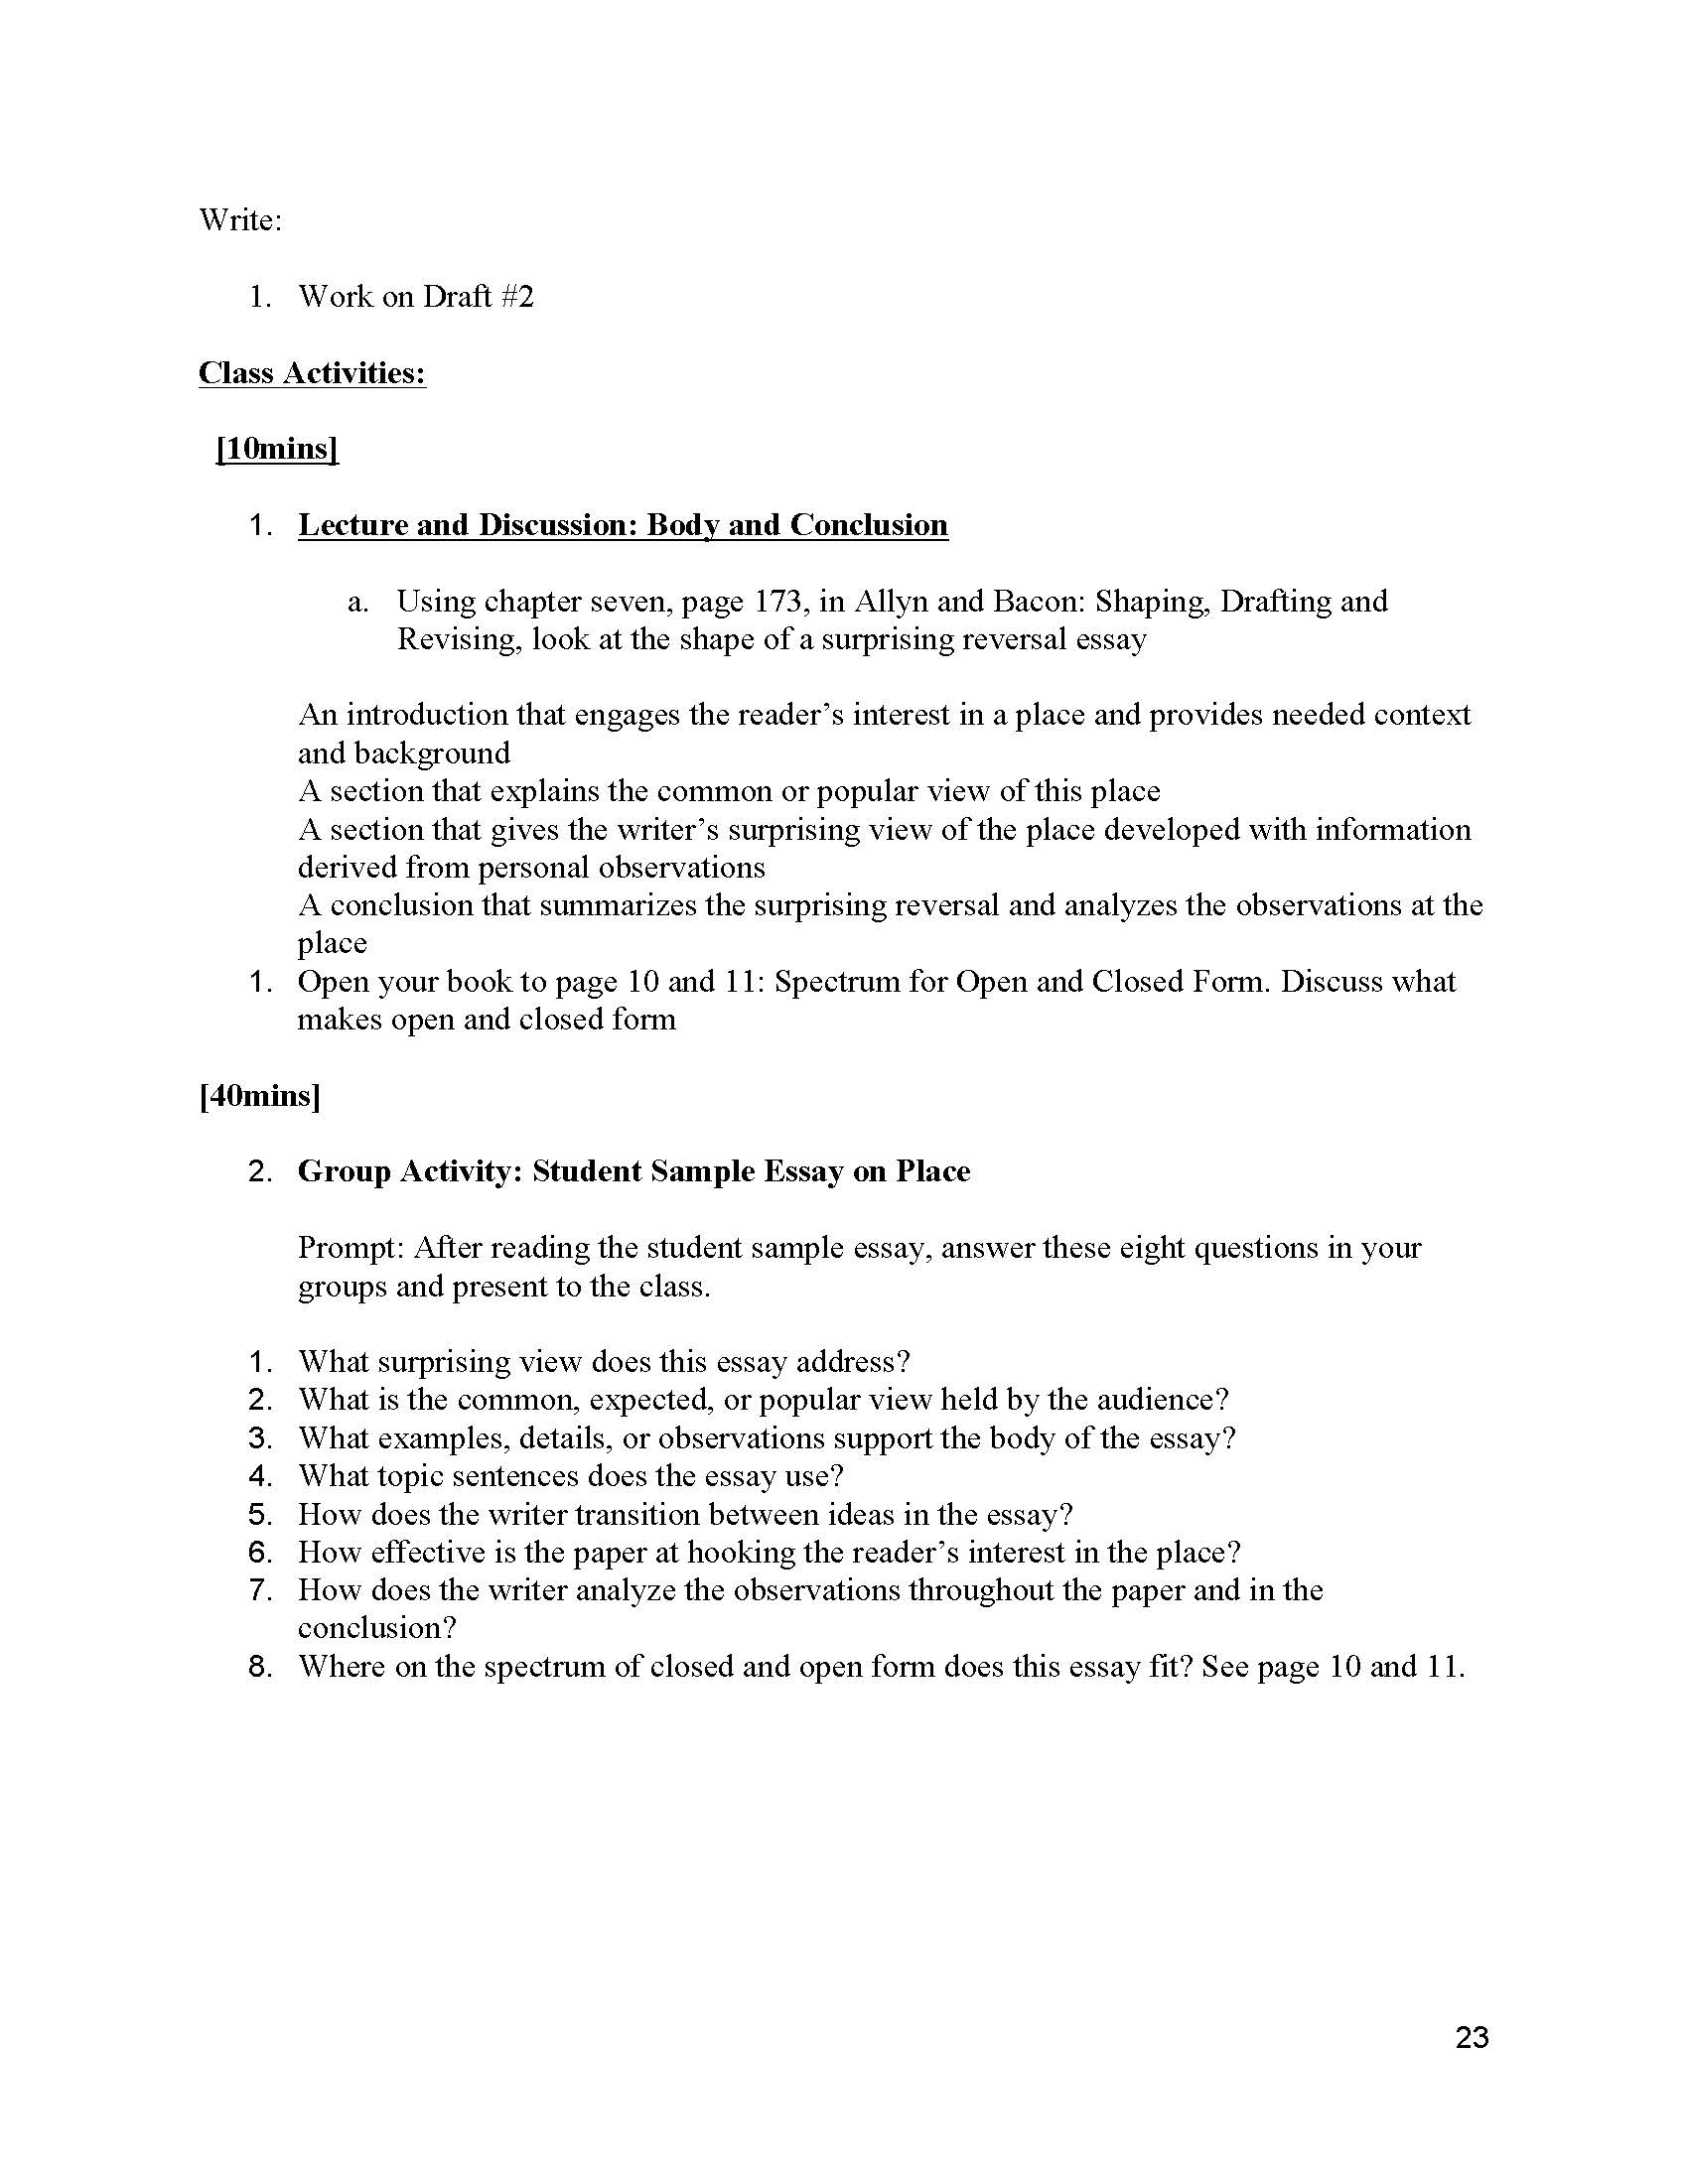 024 Informative Essay Topics Unit 2 Plans Instructor Copy Page 23 Remarkable Prompt 4th Grade Prompts For High School Expository College Students Full